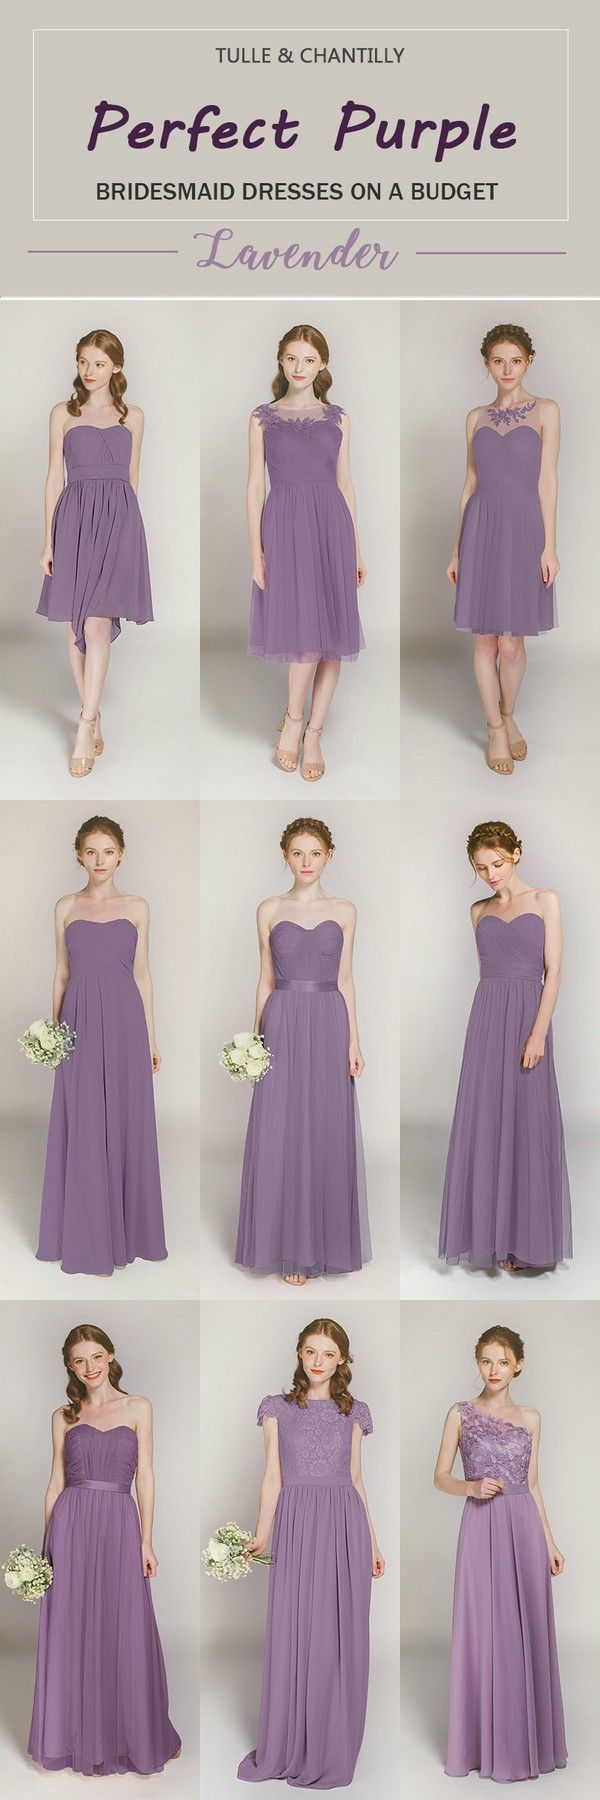 32 best purple bridesmaid dresses images on pinterest party lavender long short bridesmaid dresses from 89 in size 2 30 and 100 color ombrellifo Choice Image